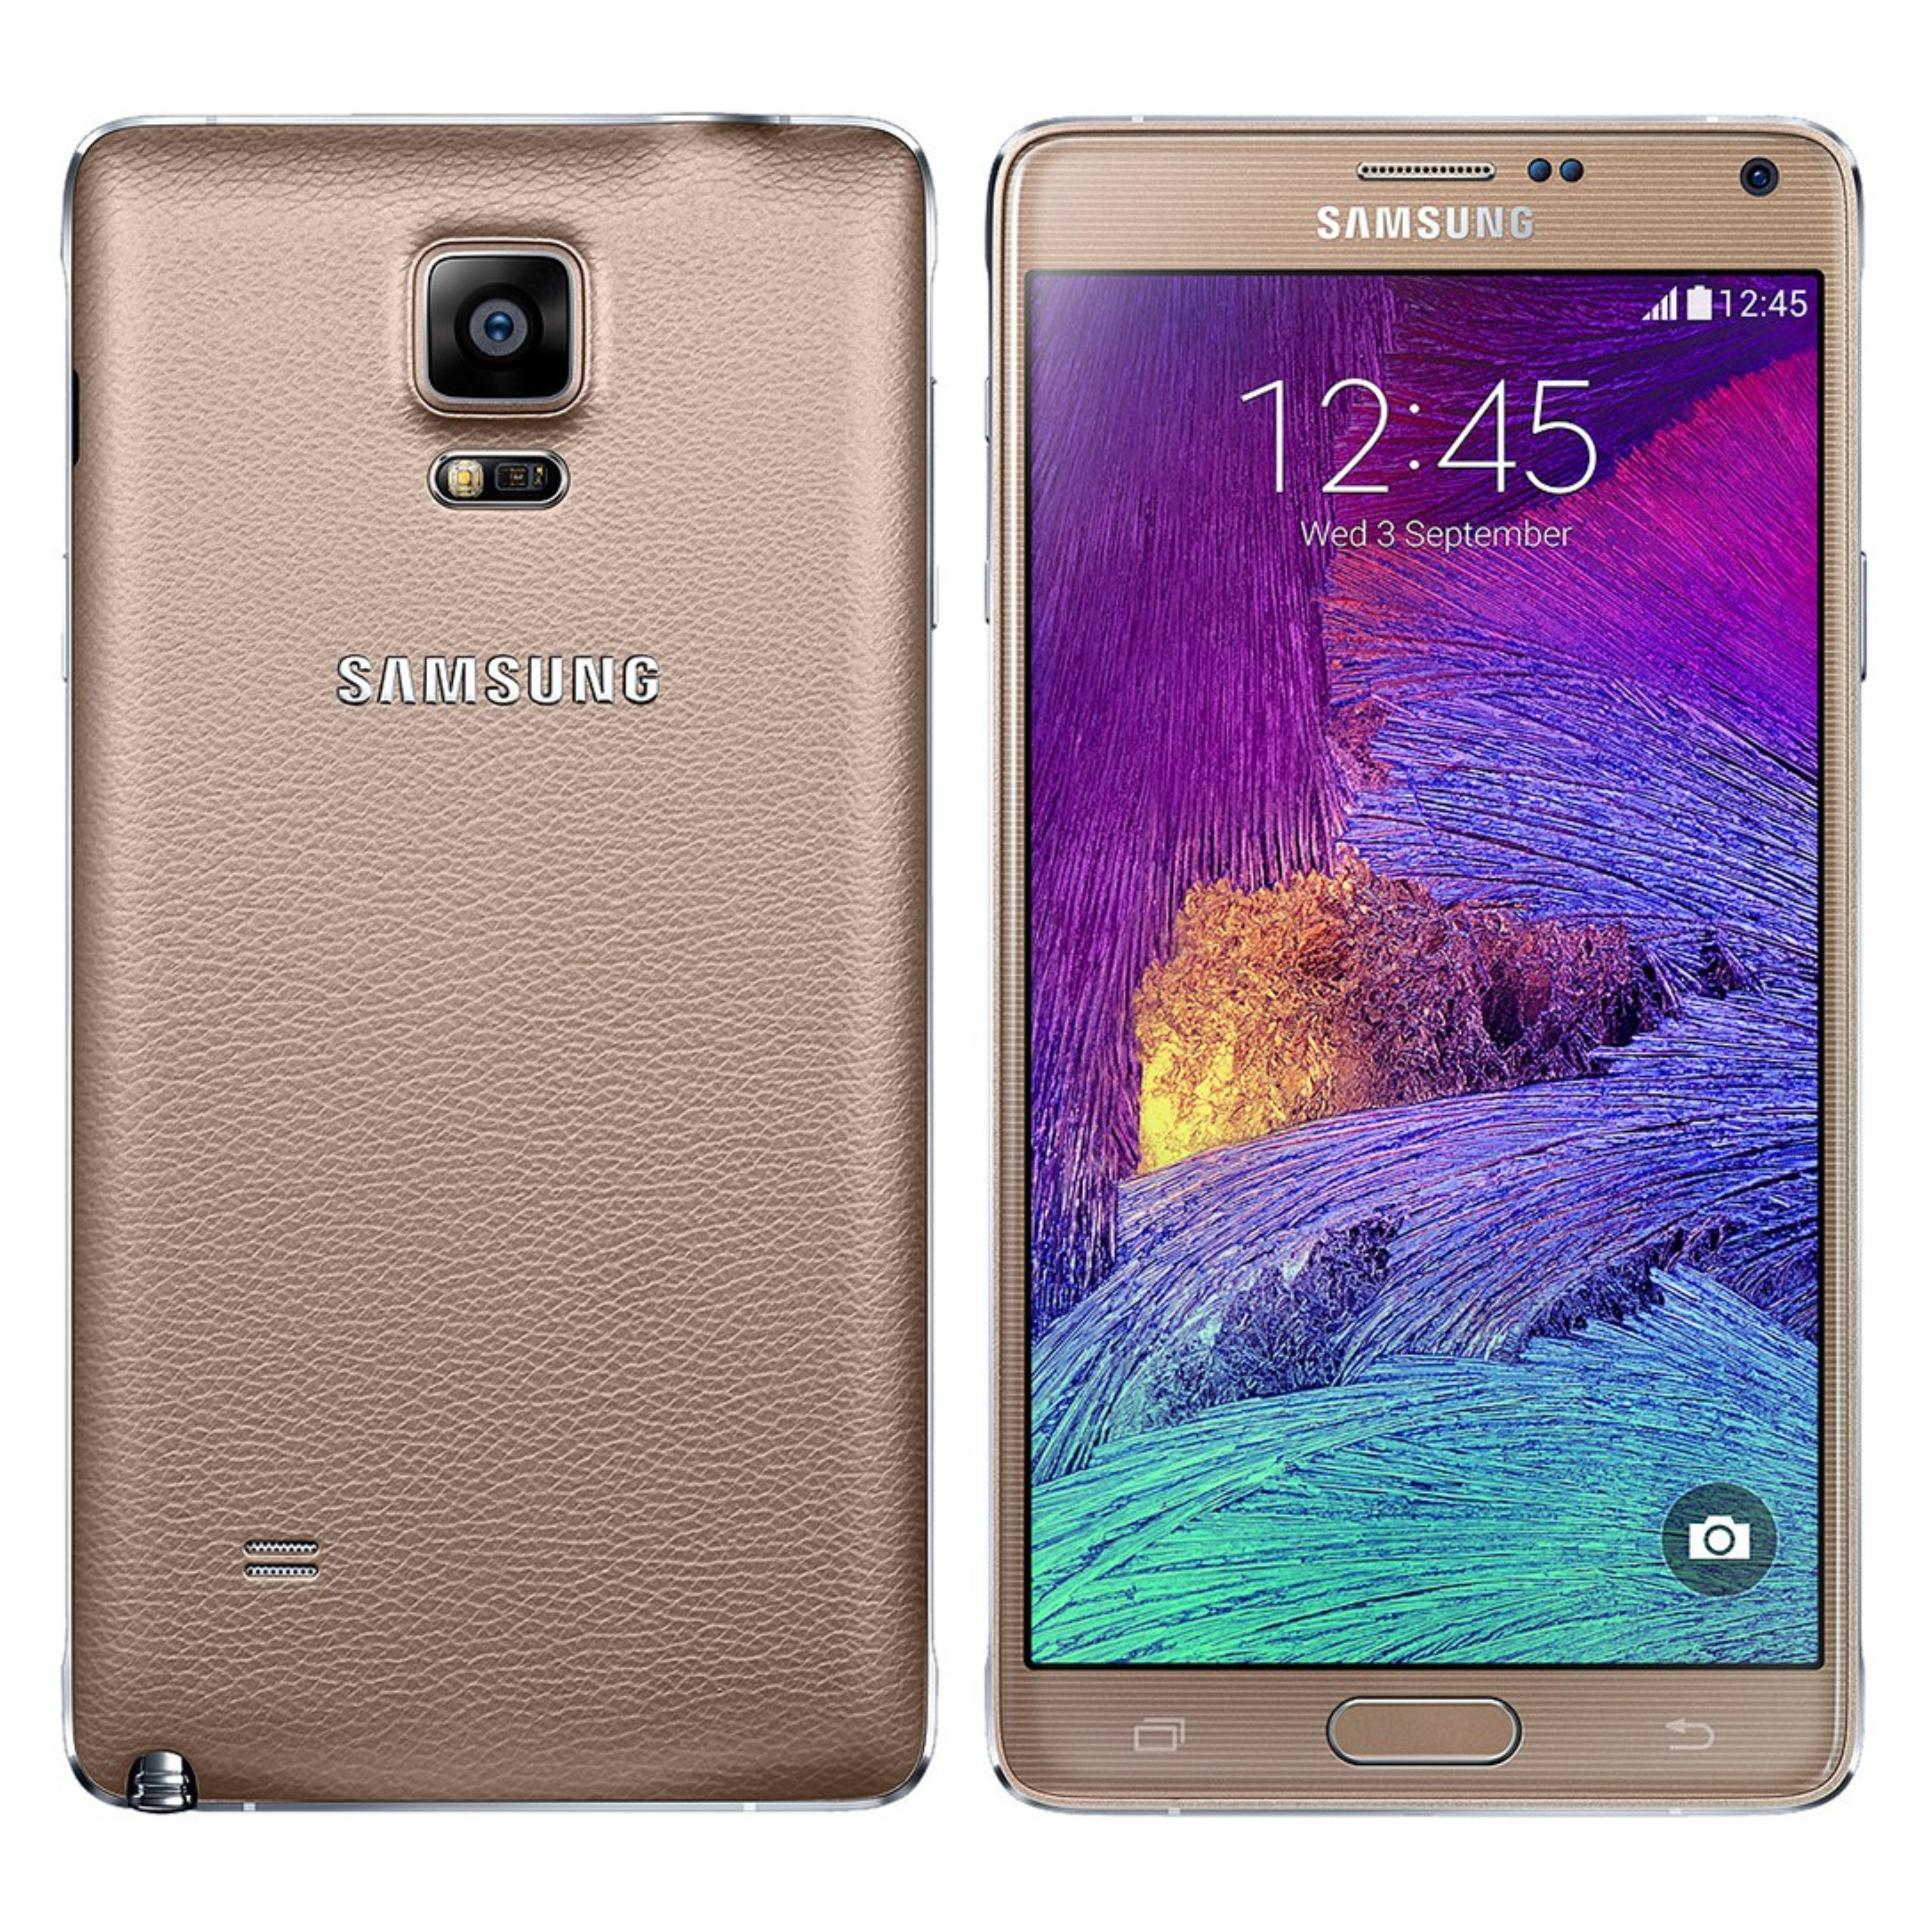 SAMSUNG GALAXY NOTE 4 with Warranty